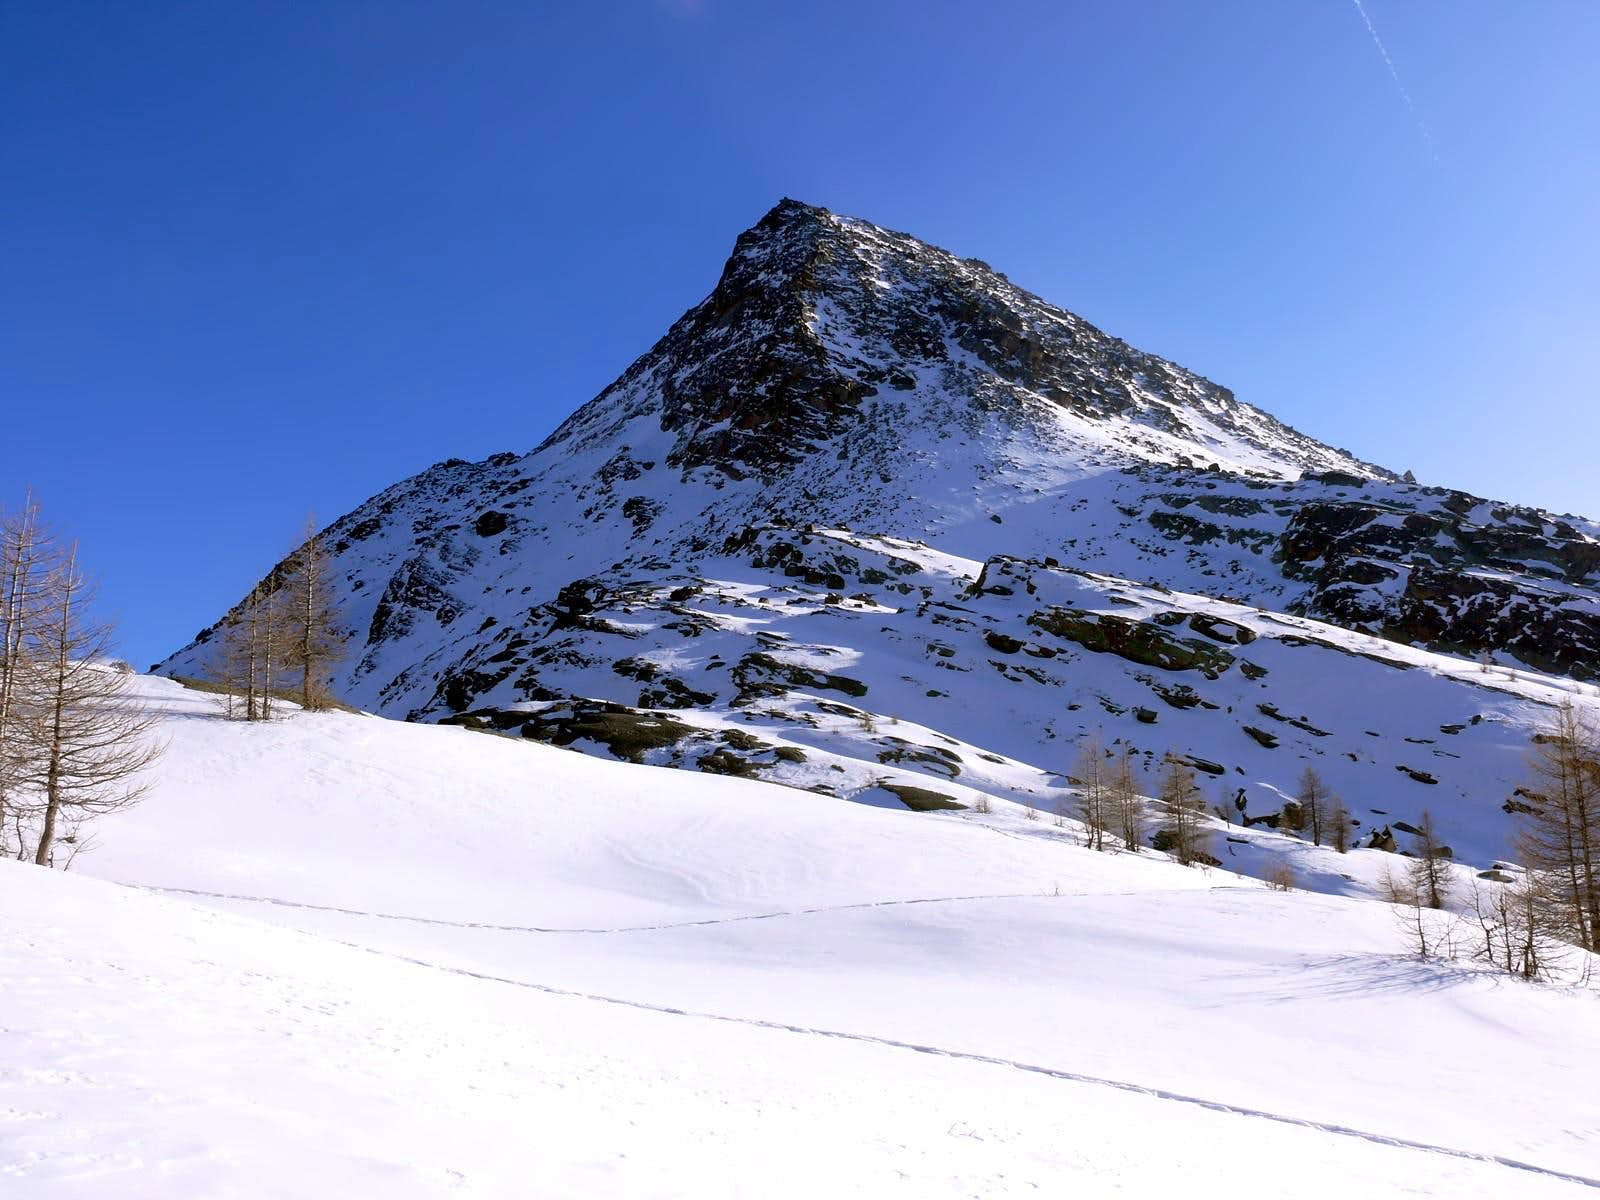 <font color=blue>▲</font>Pointe de la Roley or Cima dell\'Arollay